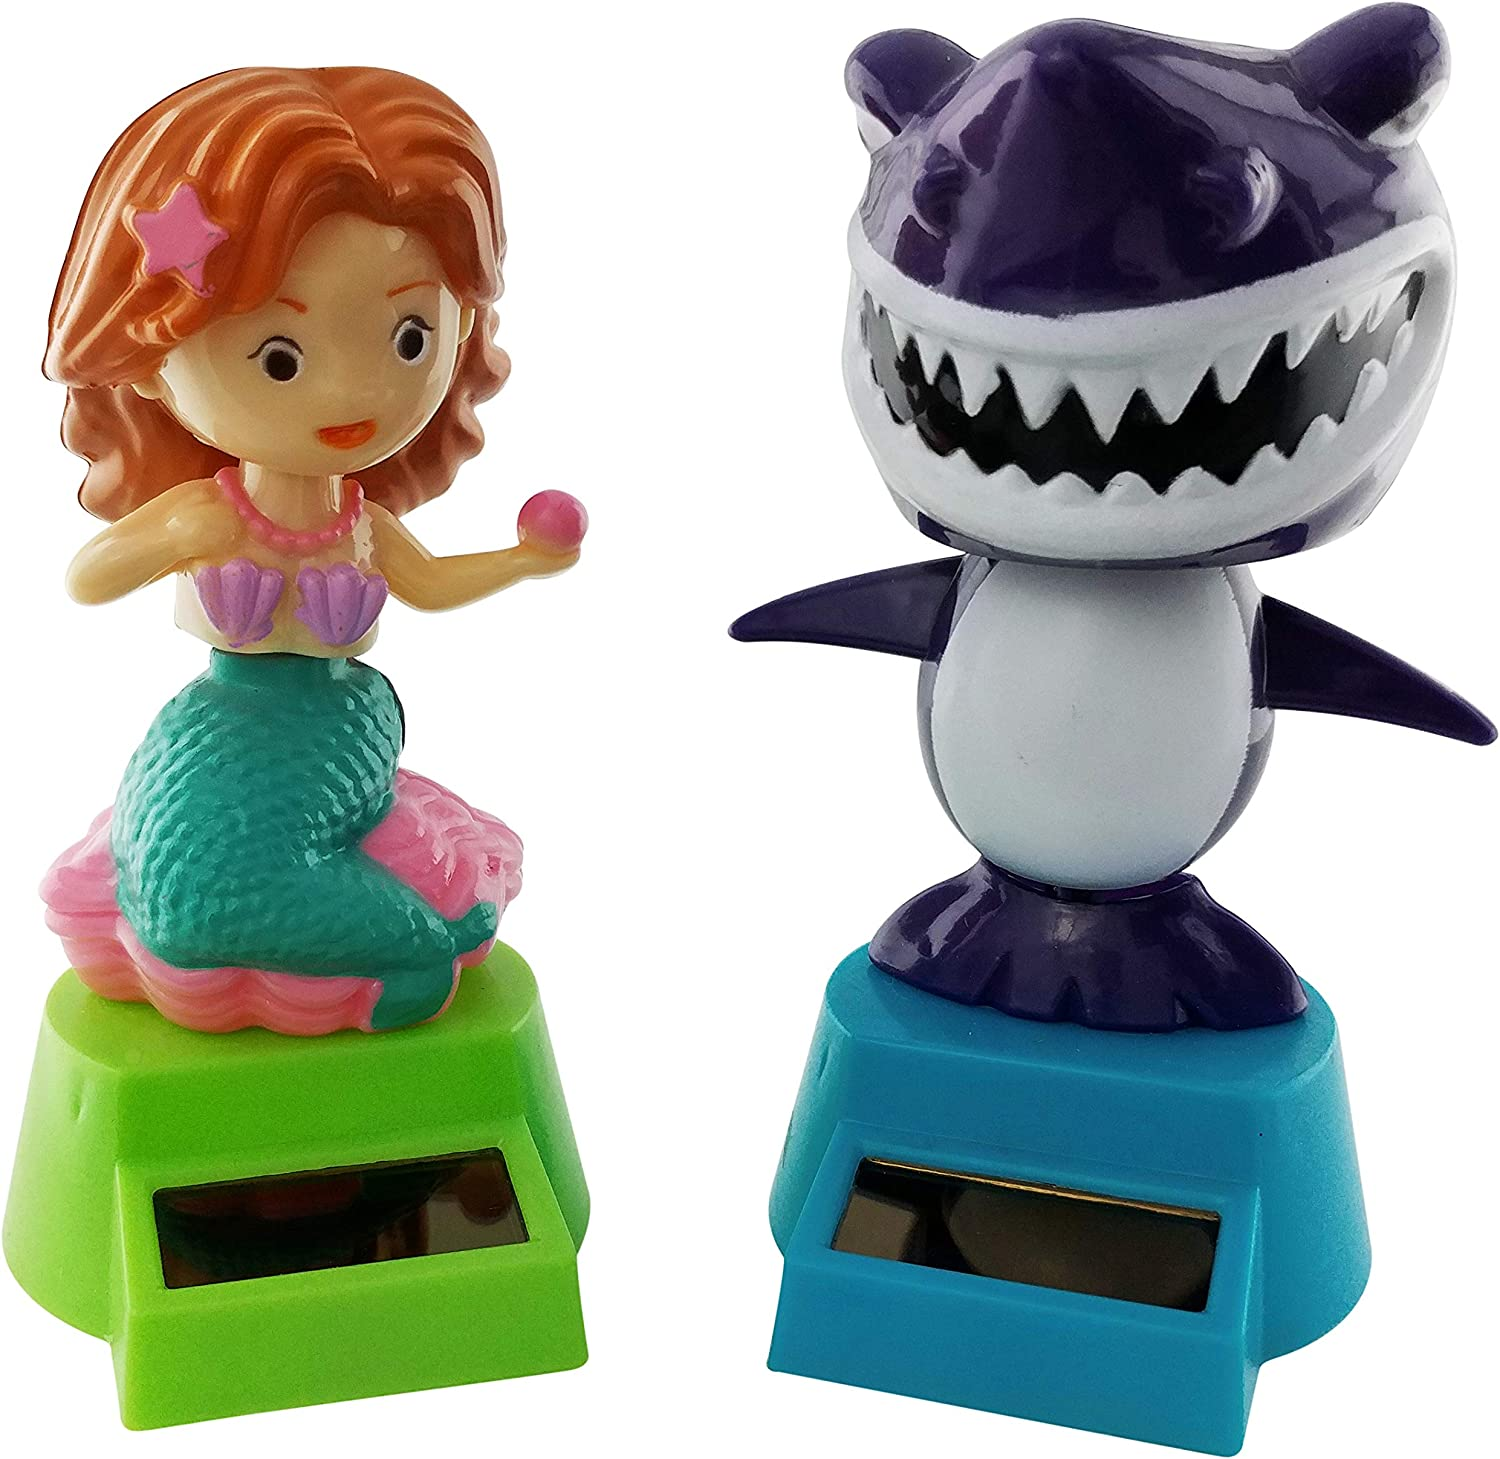 Outdoors By Design Solar Dancing Mermaid and Shark Toys are Solar Powered Figures | Also Called Dashboard Dancing Toy Decorations or Solar Powered Bobble Head Toys